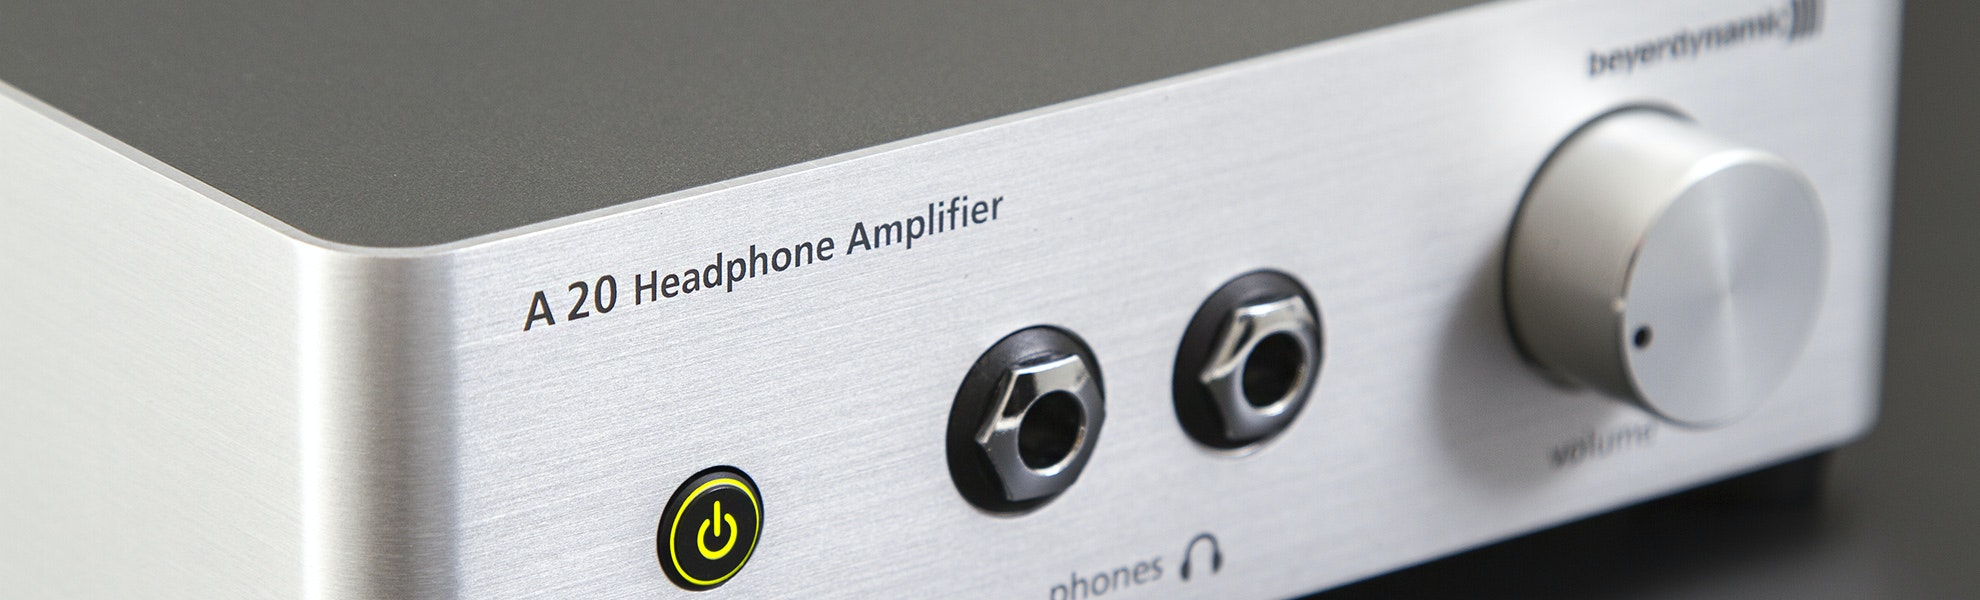 Beyerdynamic A20 Headphone Amplifier